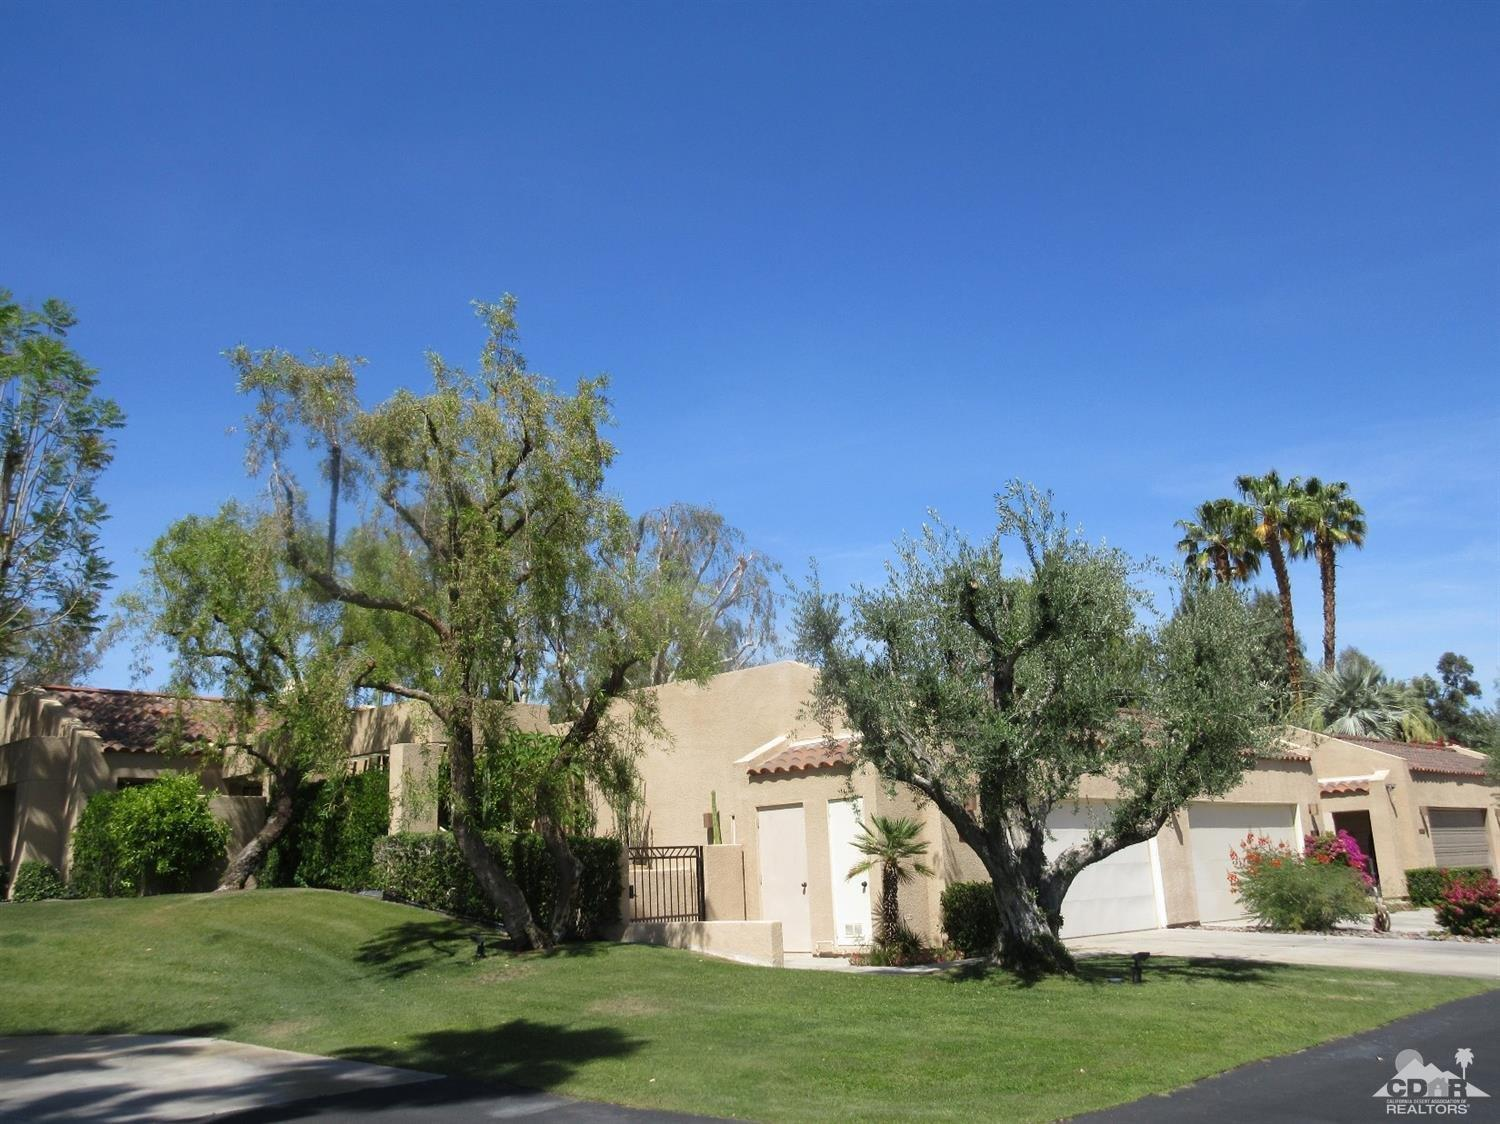 22 Mission Court, Rancho Mirage, CA 92270